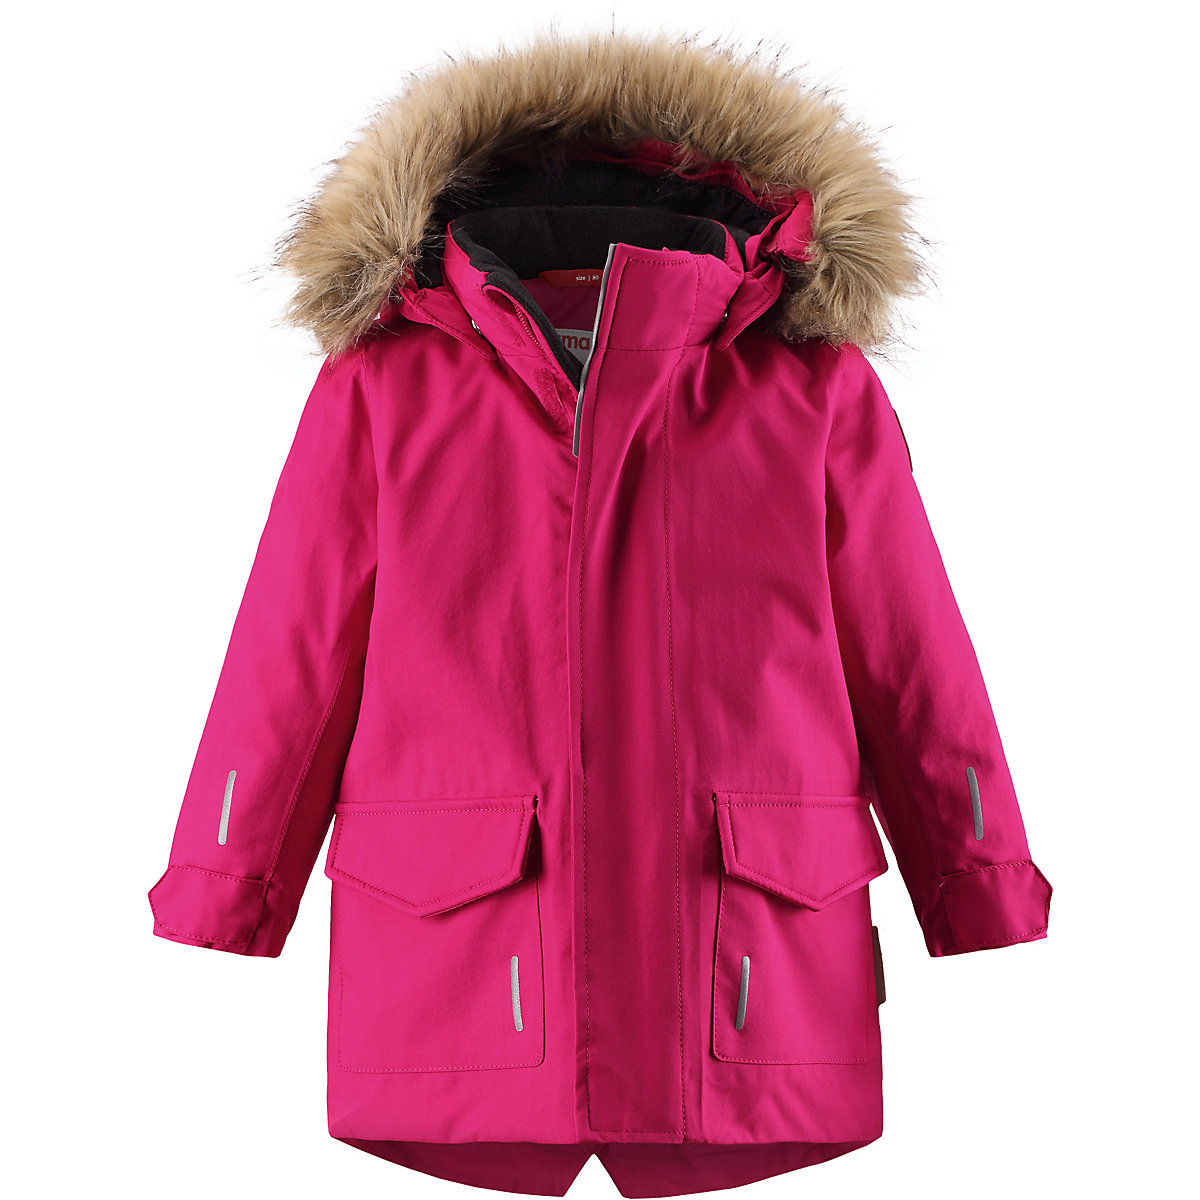 REIMA Jackets 8689313 for girls polyester winter  fur clothes girl 2016 new style popular 18 inch american girl doll pajamas clothes dress for christmas gift abd 072